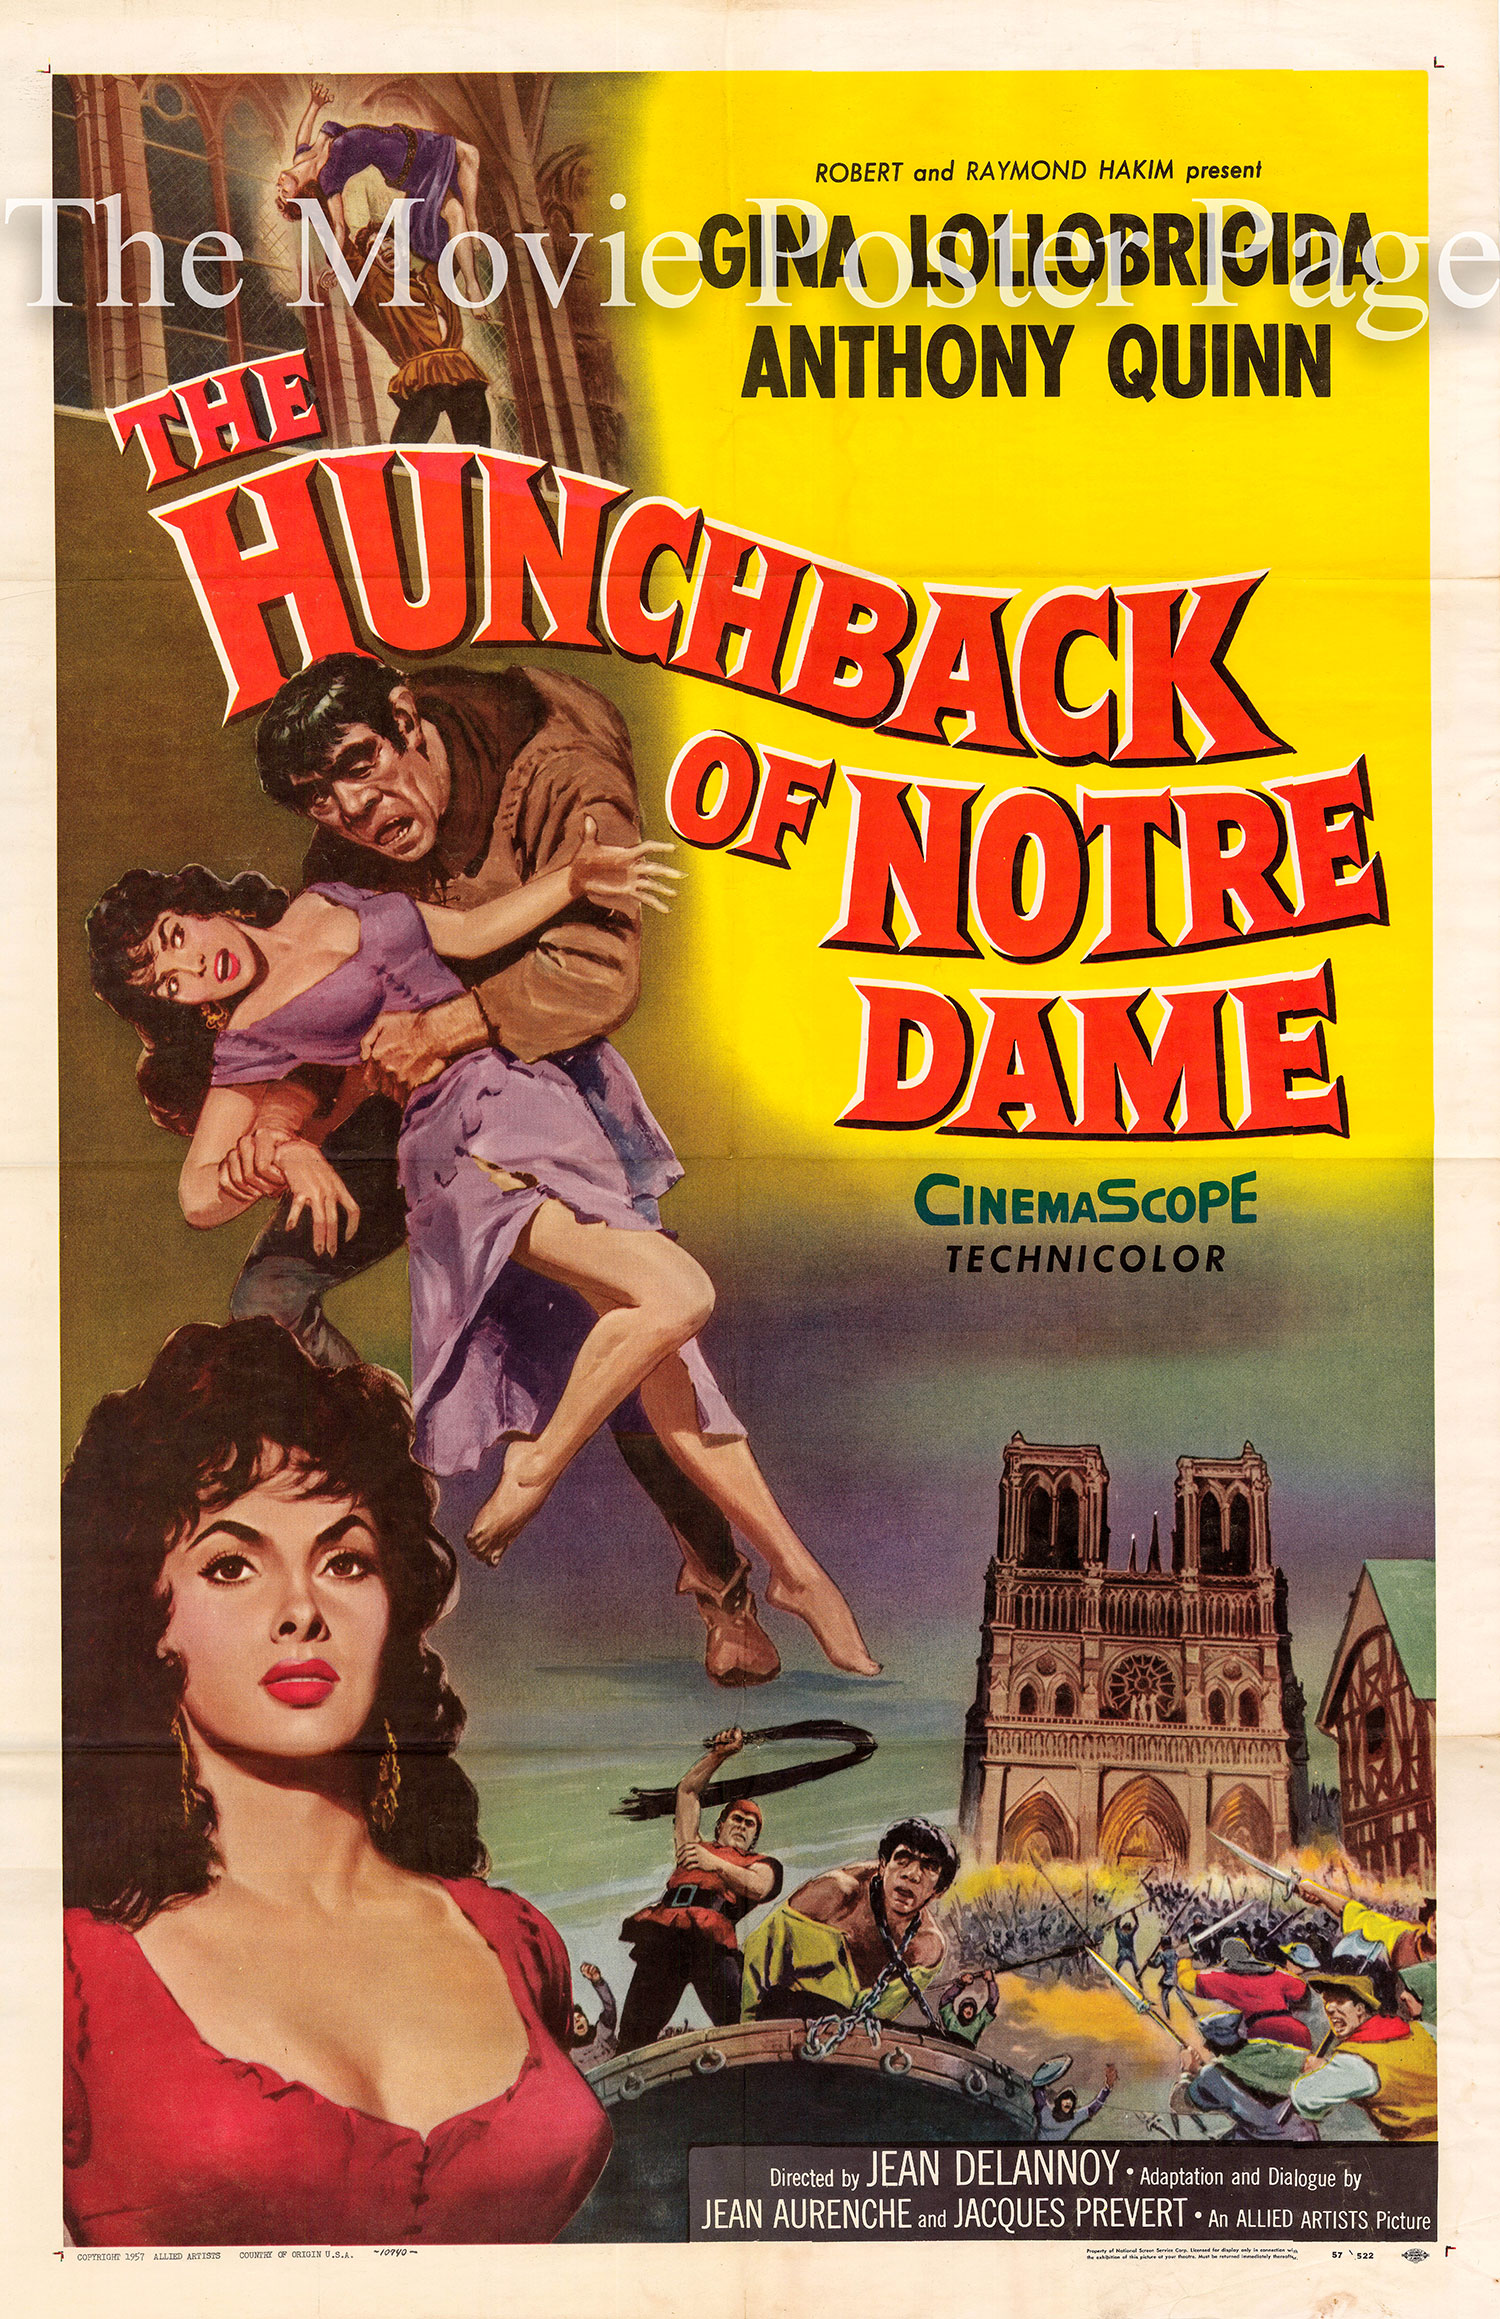 Pictured is a US one-sheet promotional poster for the 1956 Jean Delannoy film The Hunchback of Notre Dame starring Anthony Quinn and Gina Lollobrigida.